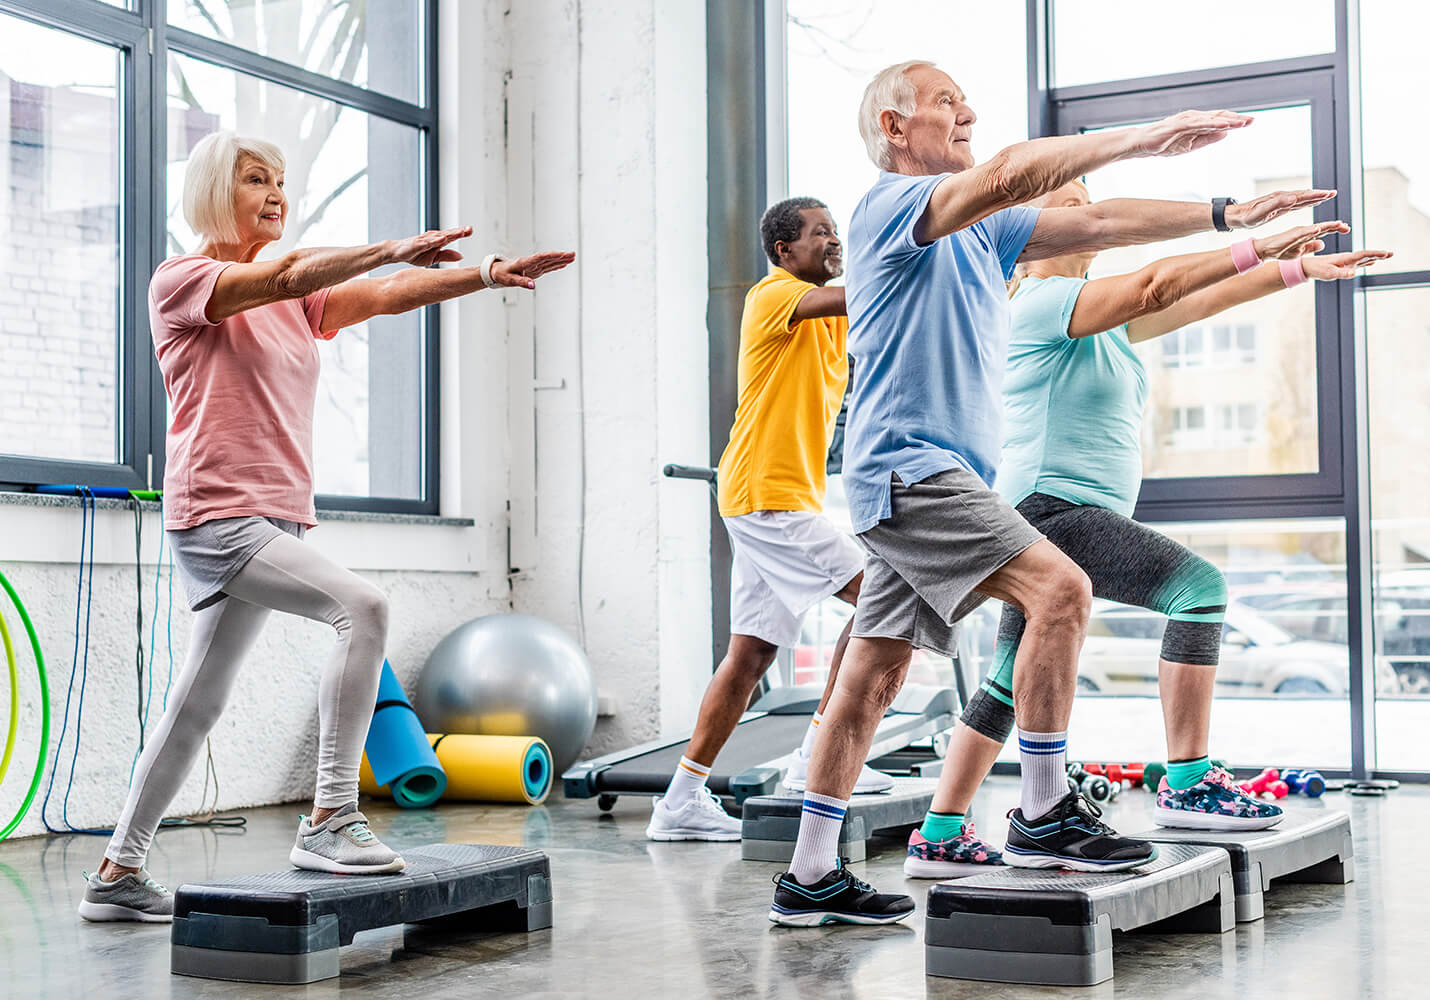 Senior citizens in exercise class